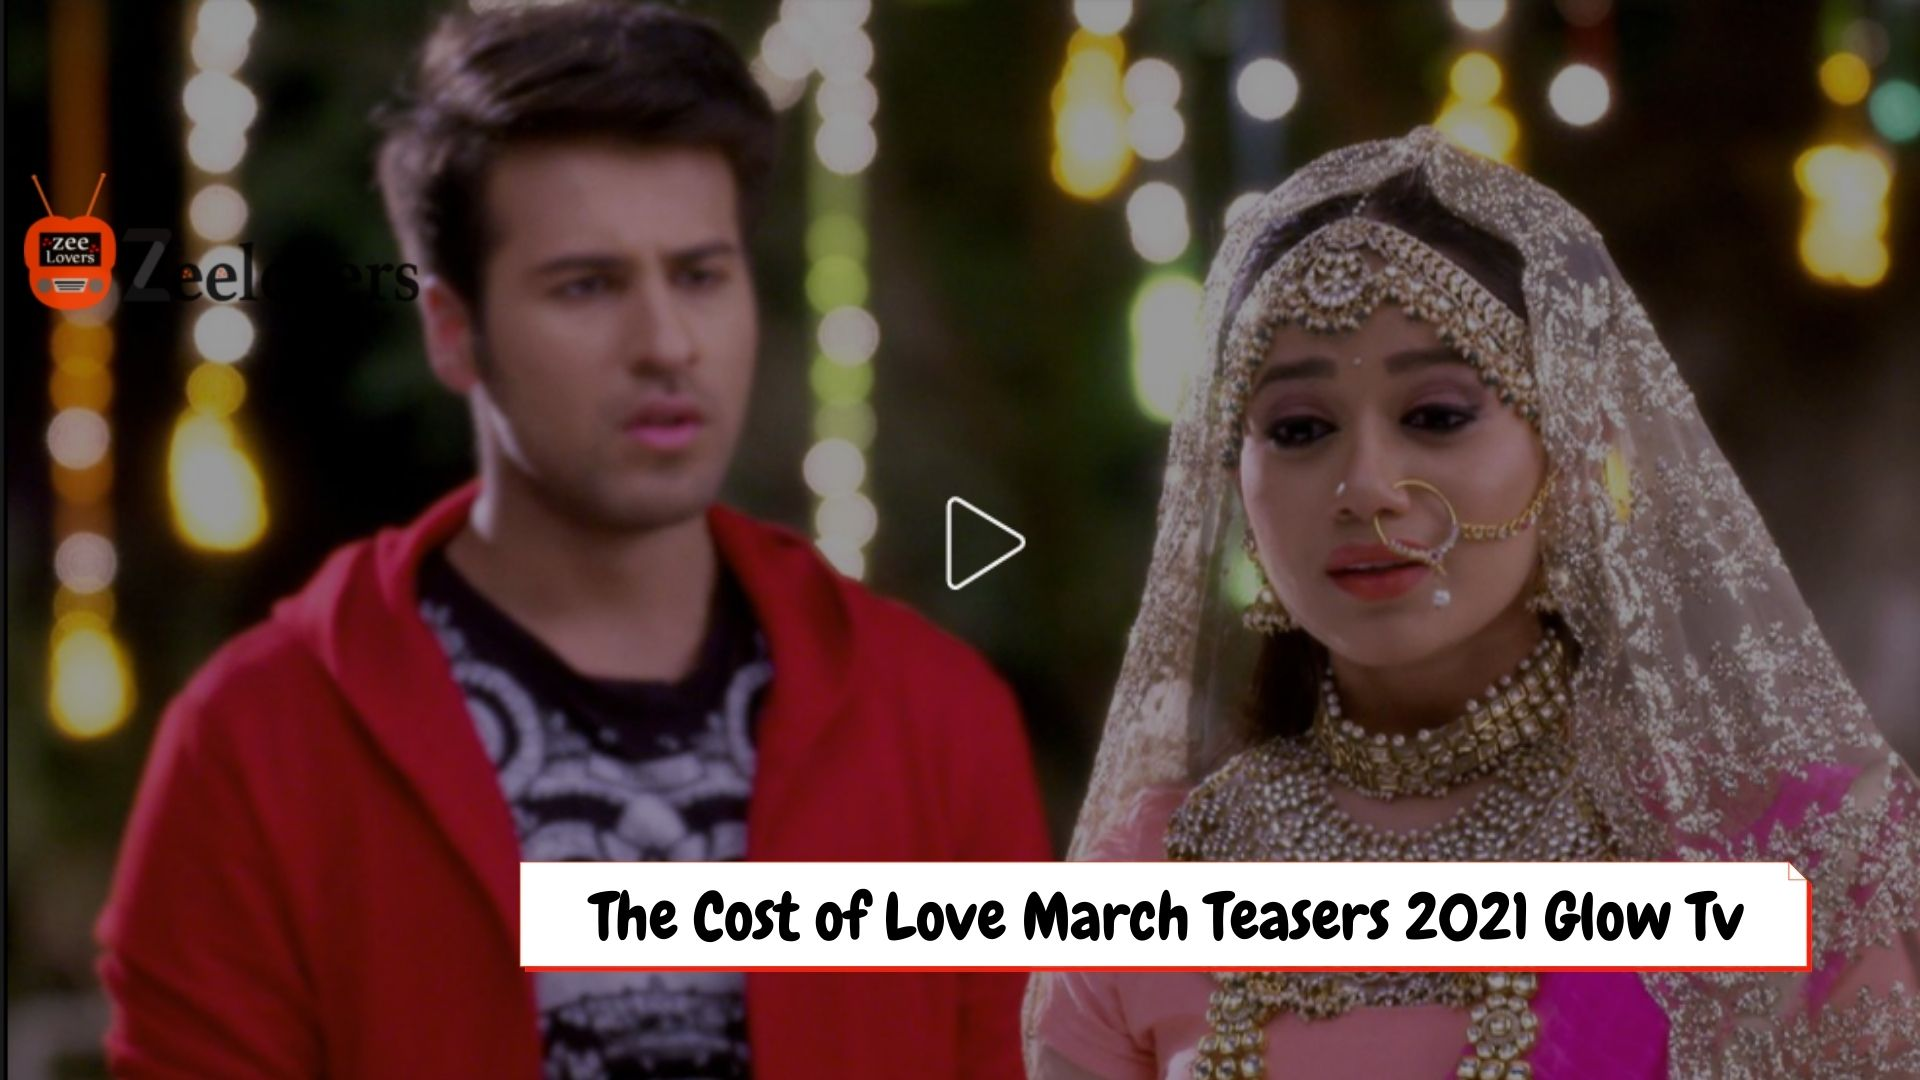 The Cost of Love March Teasers 2021 Glow Tv